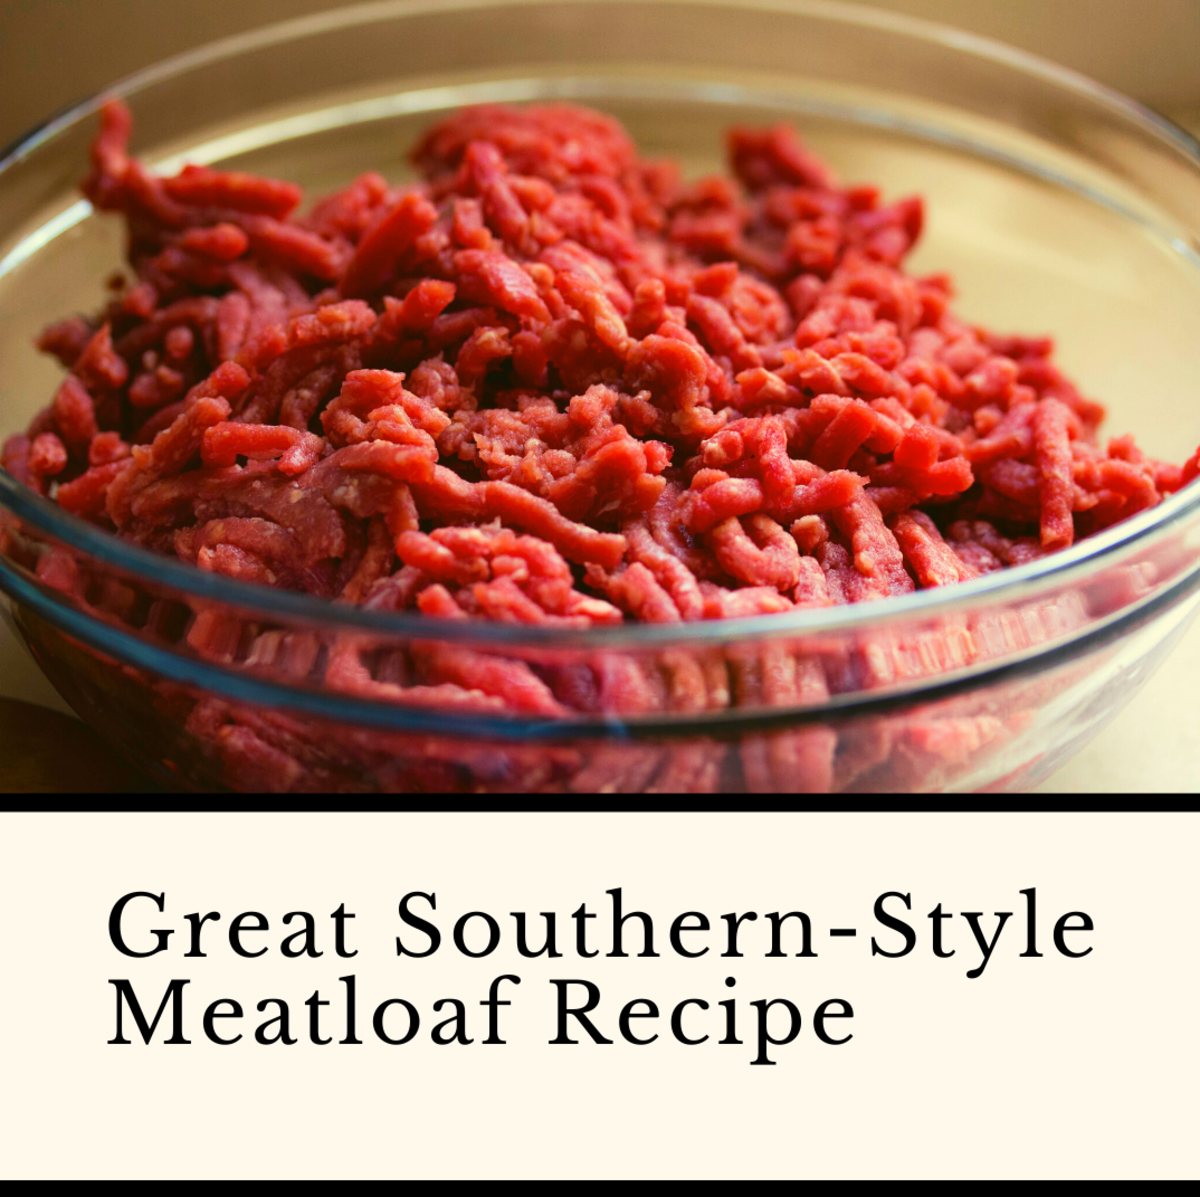 Southern-style meatloaf is a truly delicious meal.